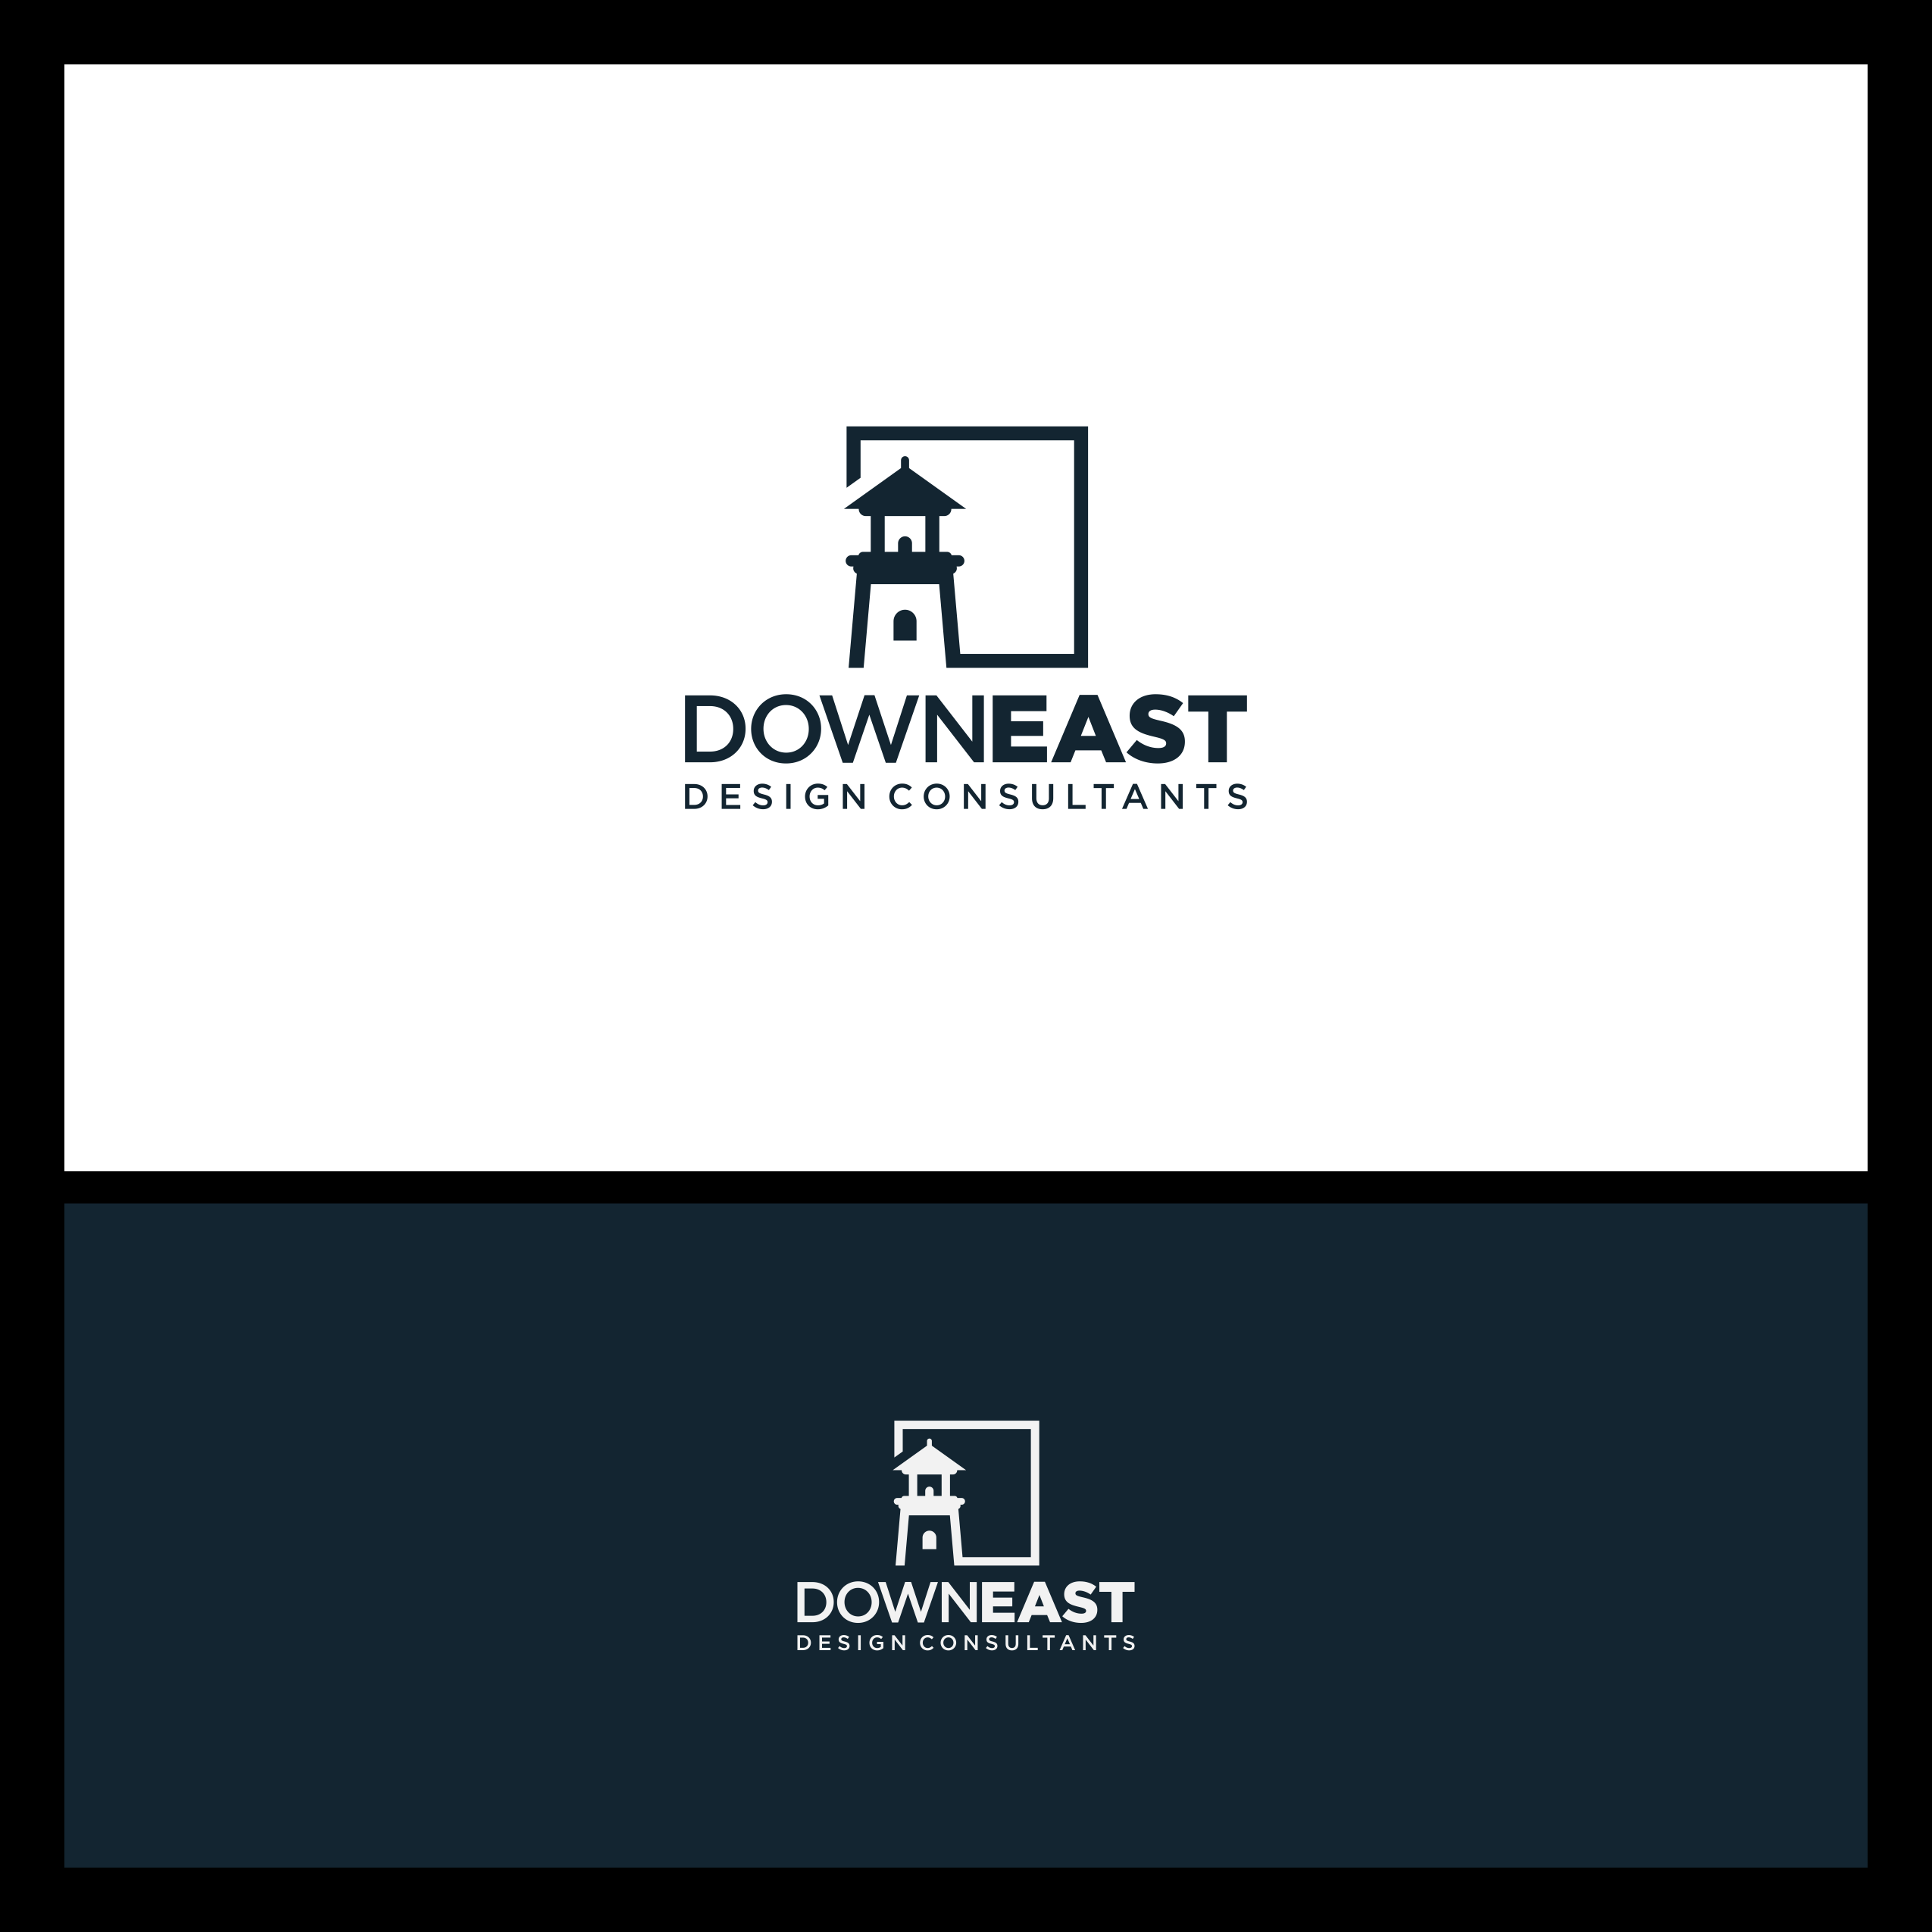 Design a sleek and professional logo for a real estate development consulting company